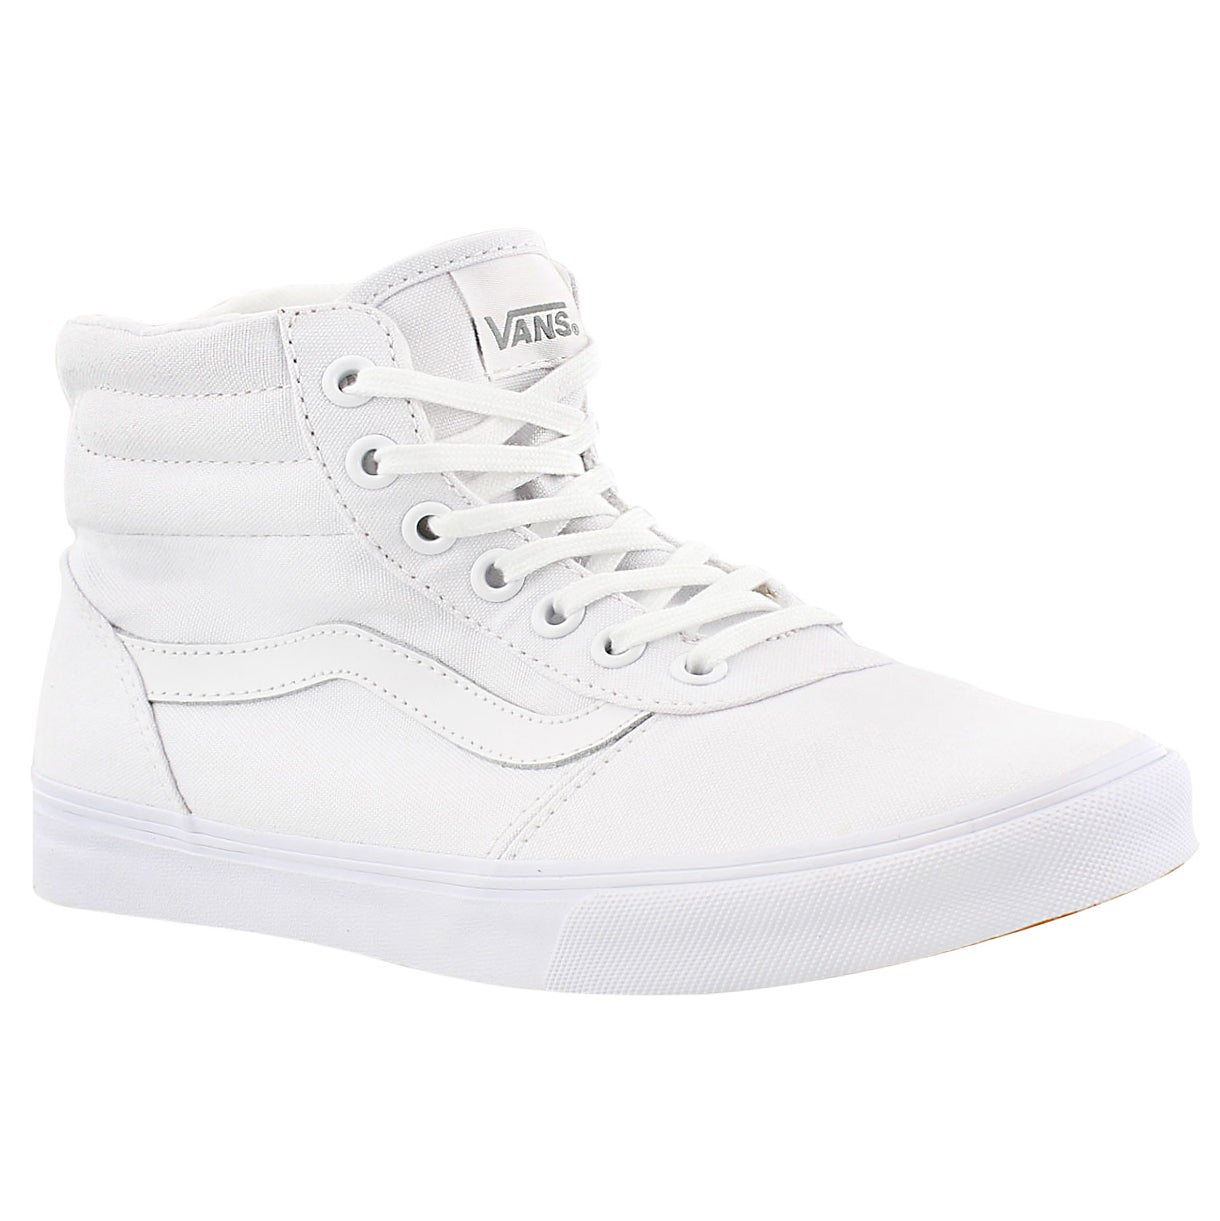 Women's MILTON HI white lace up sneakers